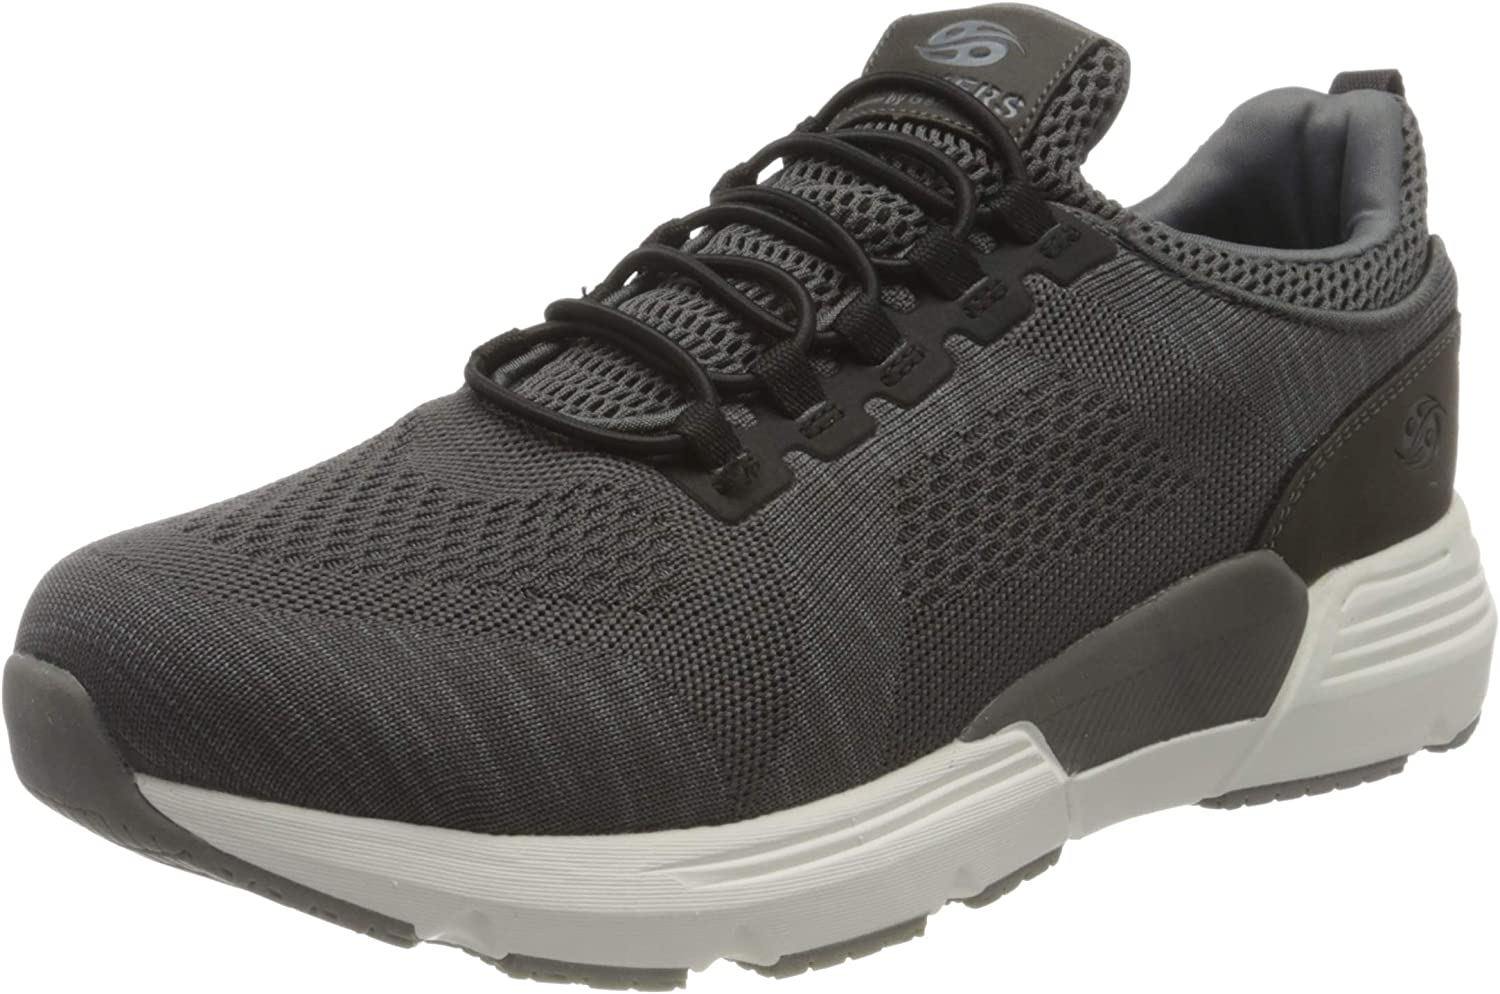 Dockers by Gerli Challenge the lowest price of Japan Sneakers Max 77% OFF Low-Top Men's